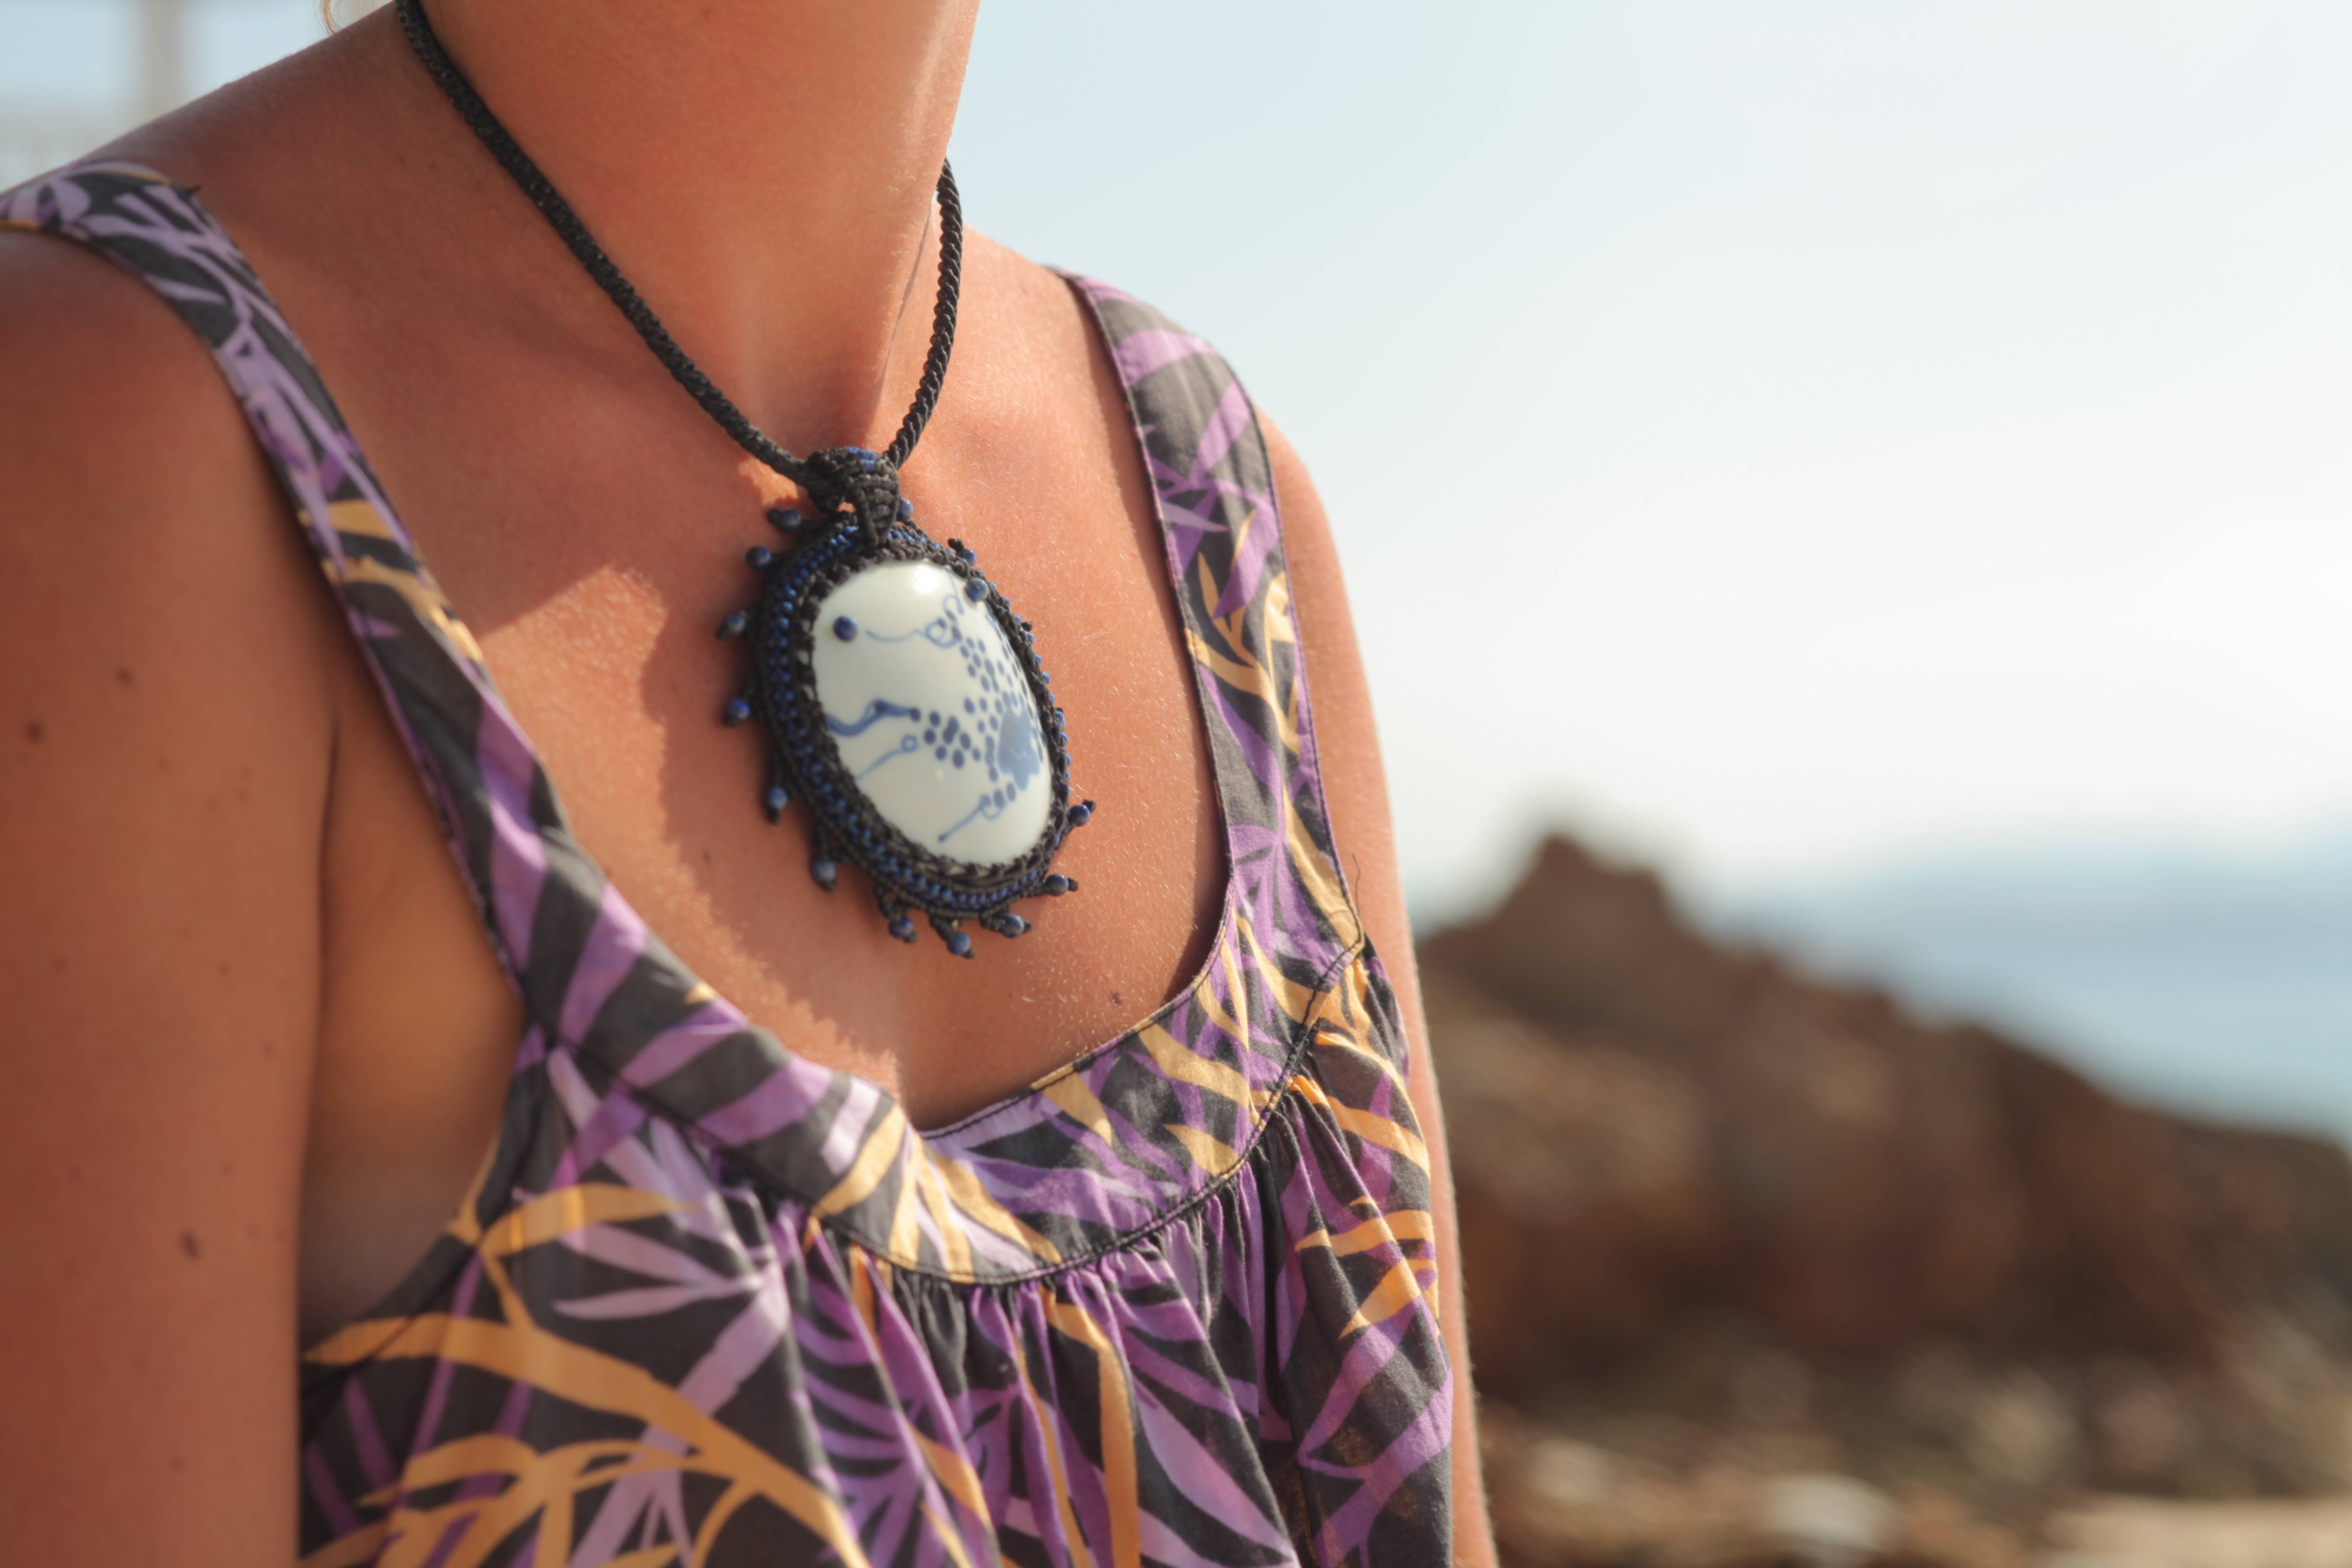 Tali Creations featuring a shipwreck pendant from MyKraak.